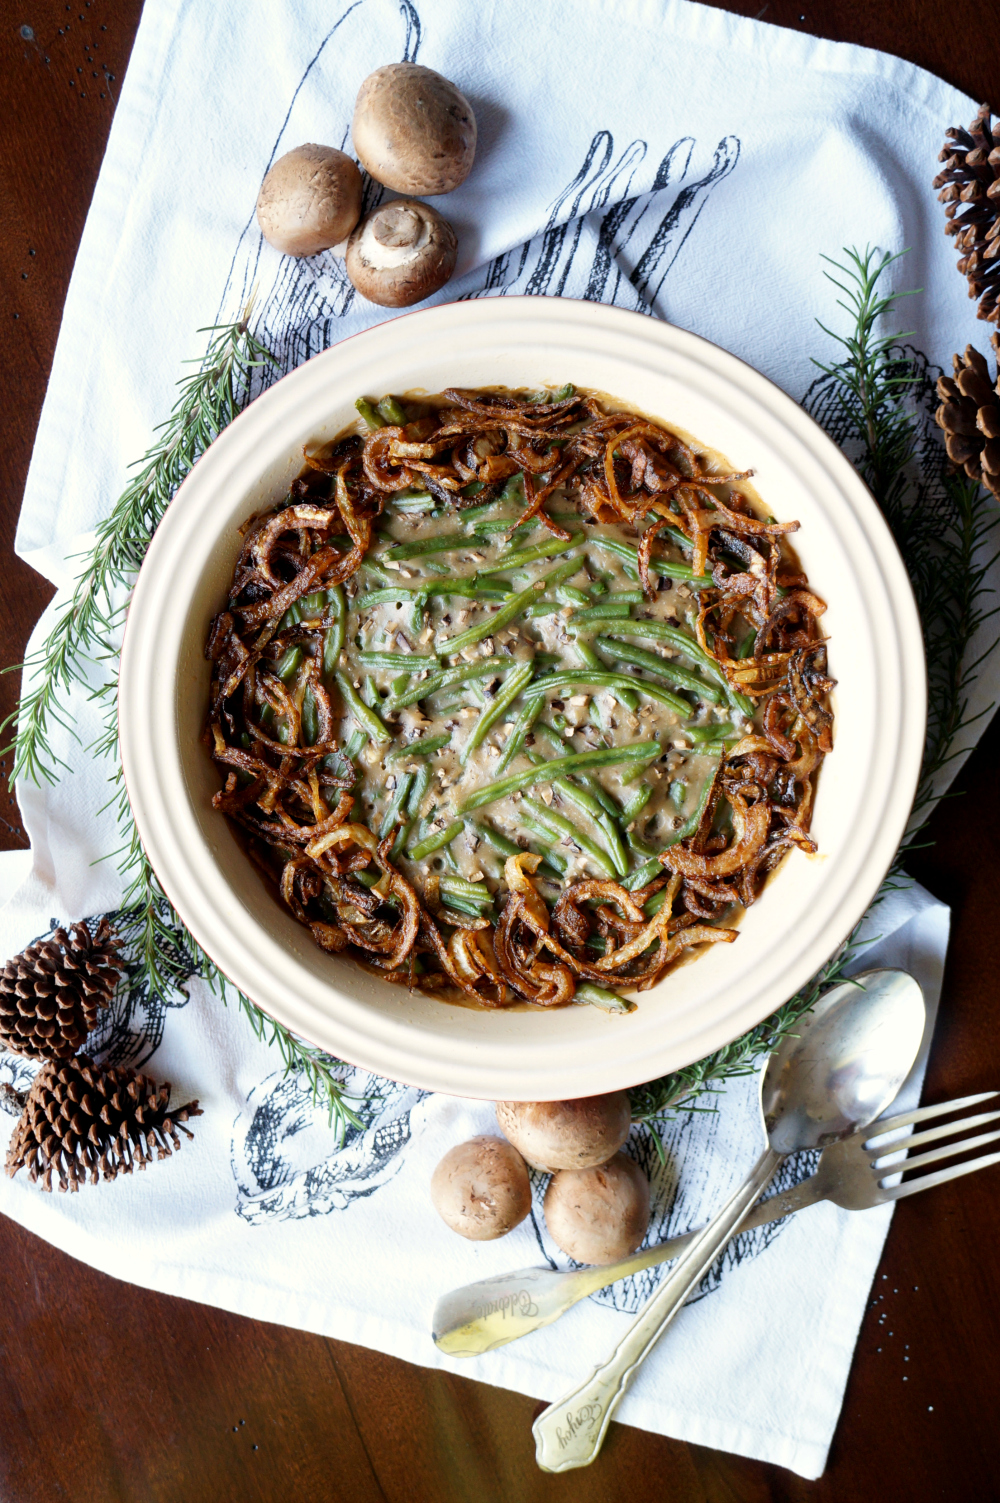 vegan green bean casserole from scratch | The Baking Fairy